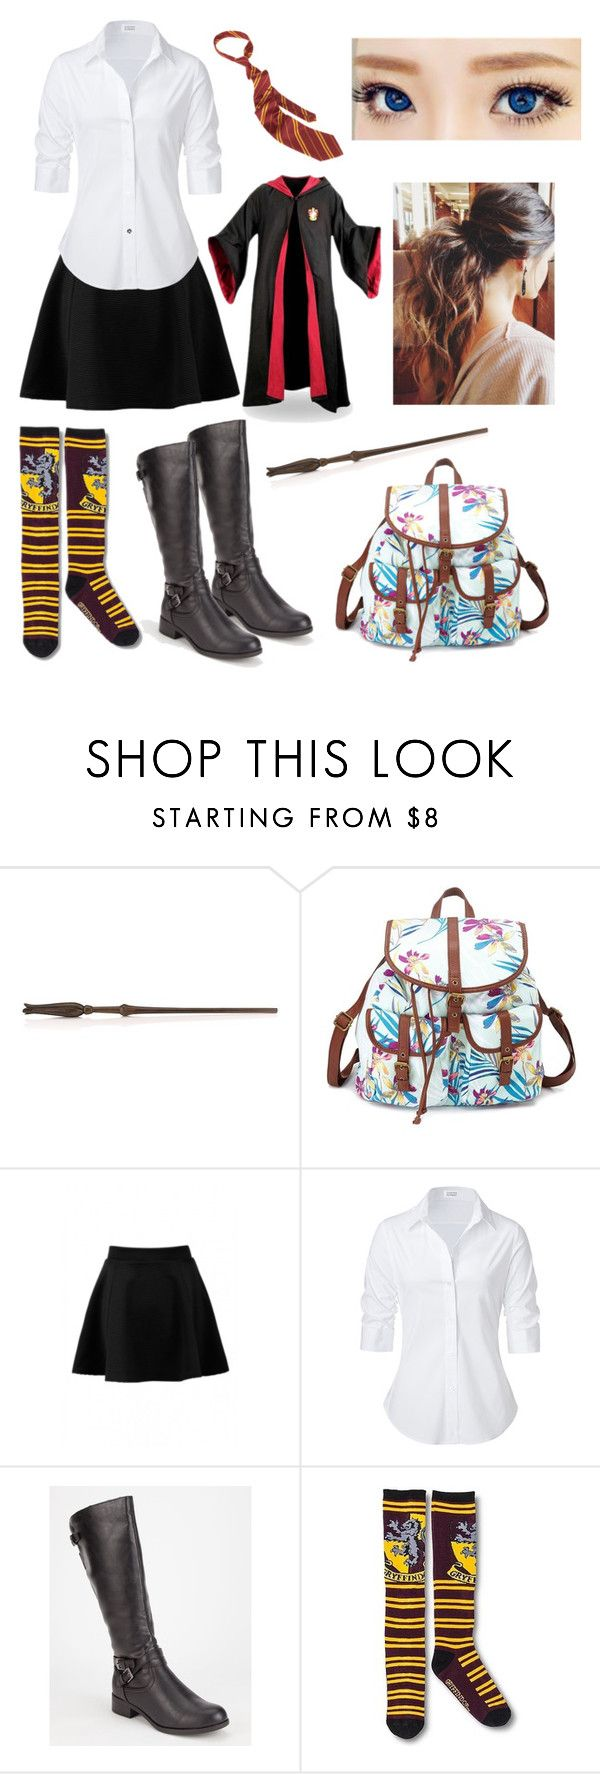 """The Jewel of His Life: Hogwarts Uniforms"" by capeles on Polyvore featuring beauty, Charlotte Russe, Steffen Schraut and Soda"